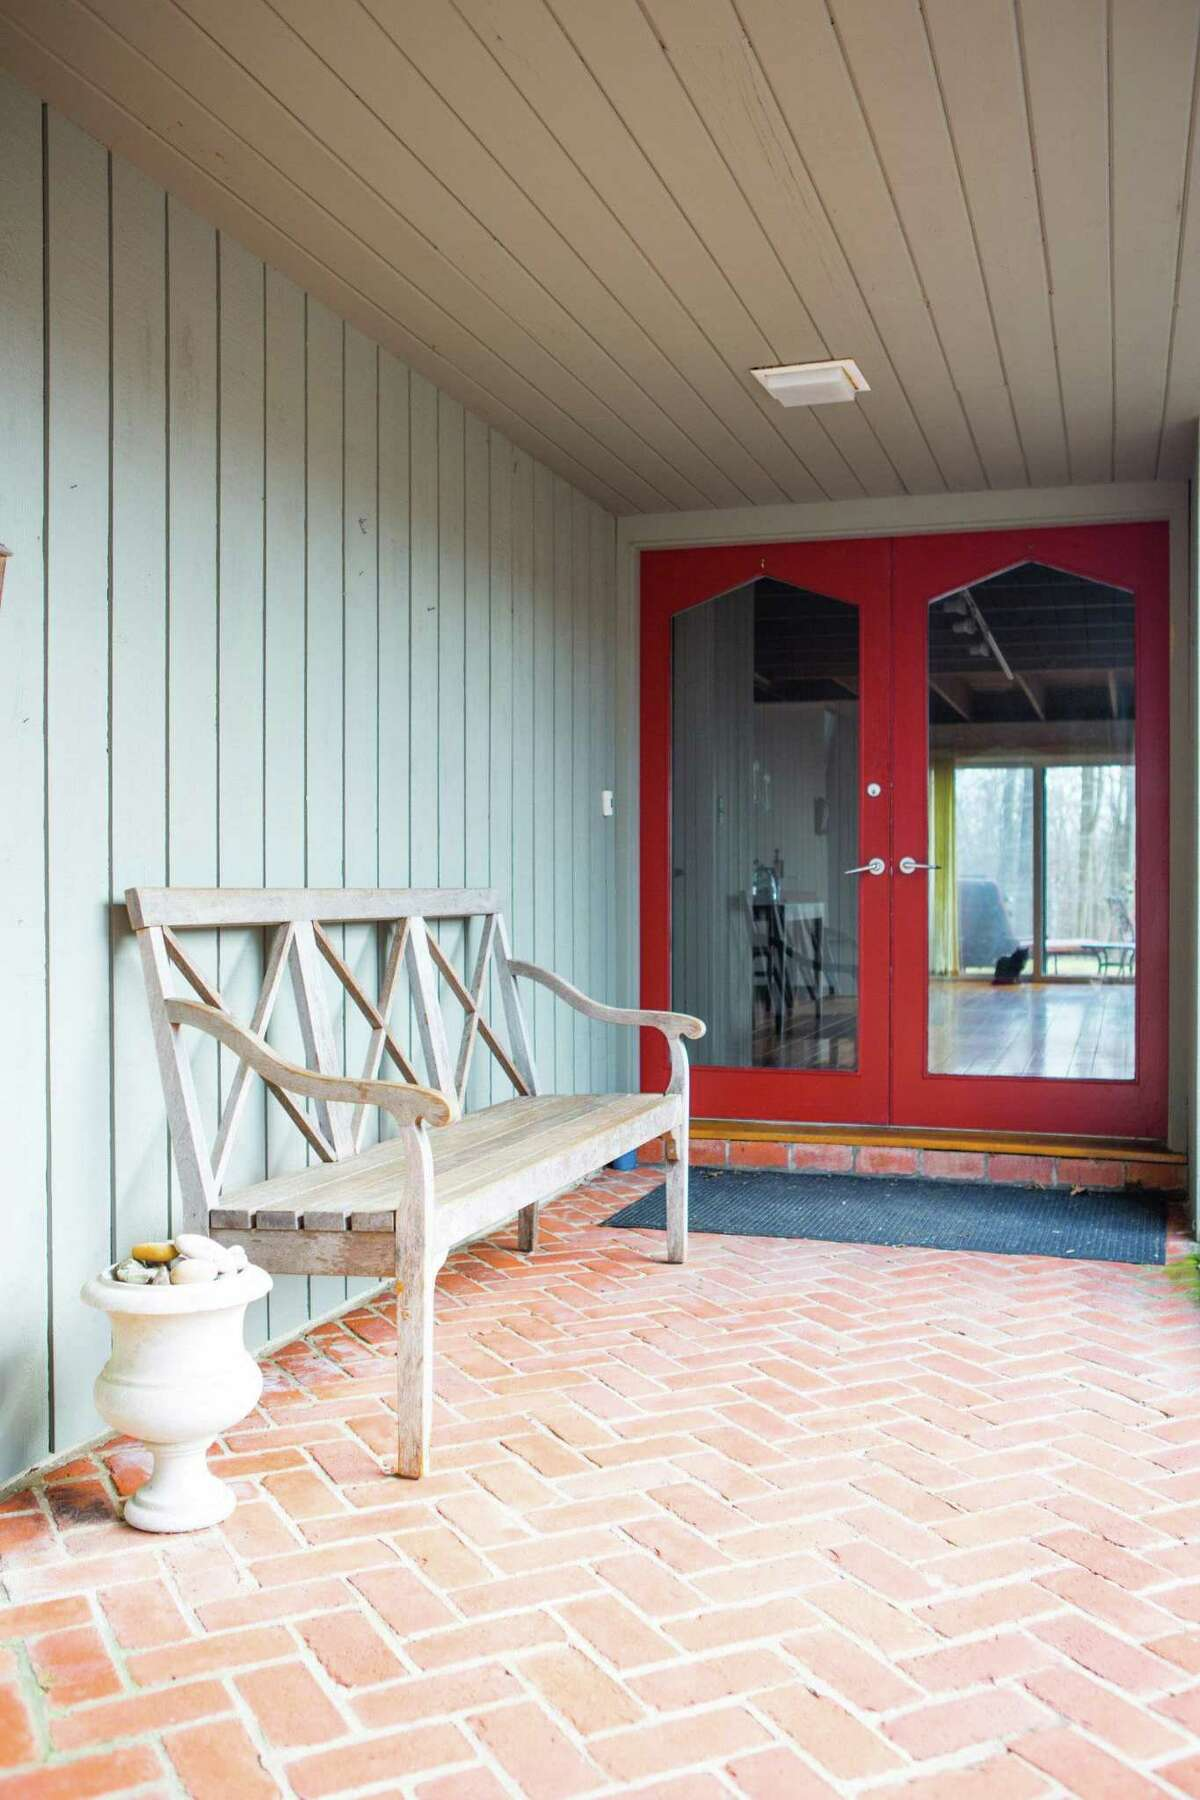 The entrance into the main house is from the covered red brick breezeway and through French doors.